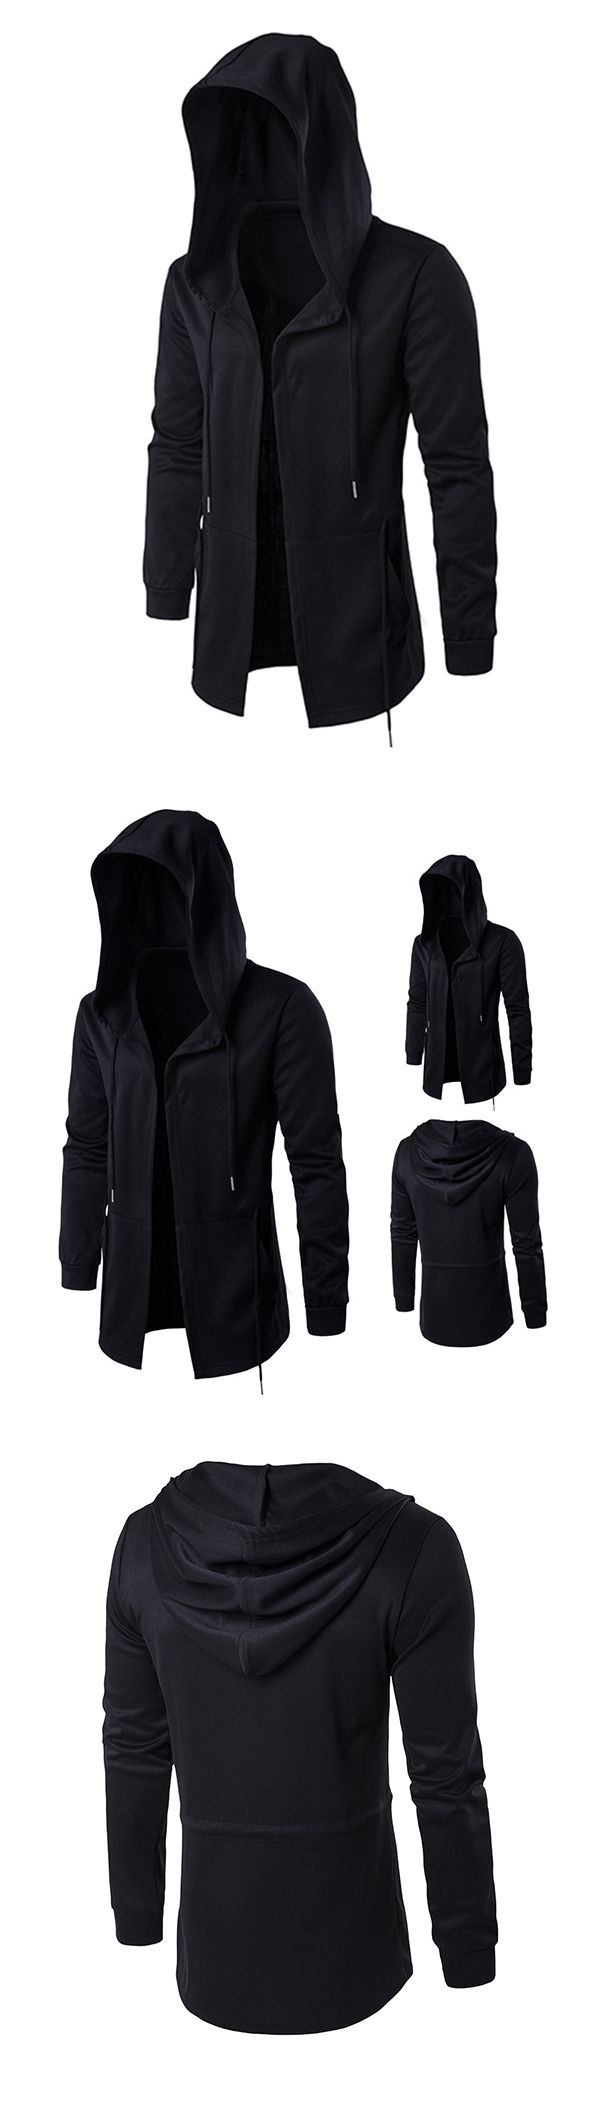 Fashion Casual Outfit: Black Cloak Hooded Jacket for Men